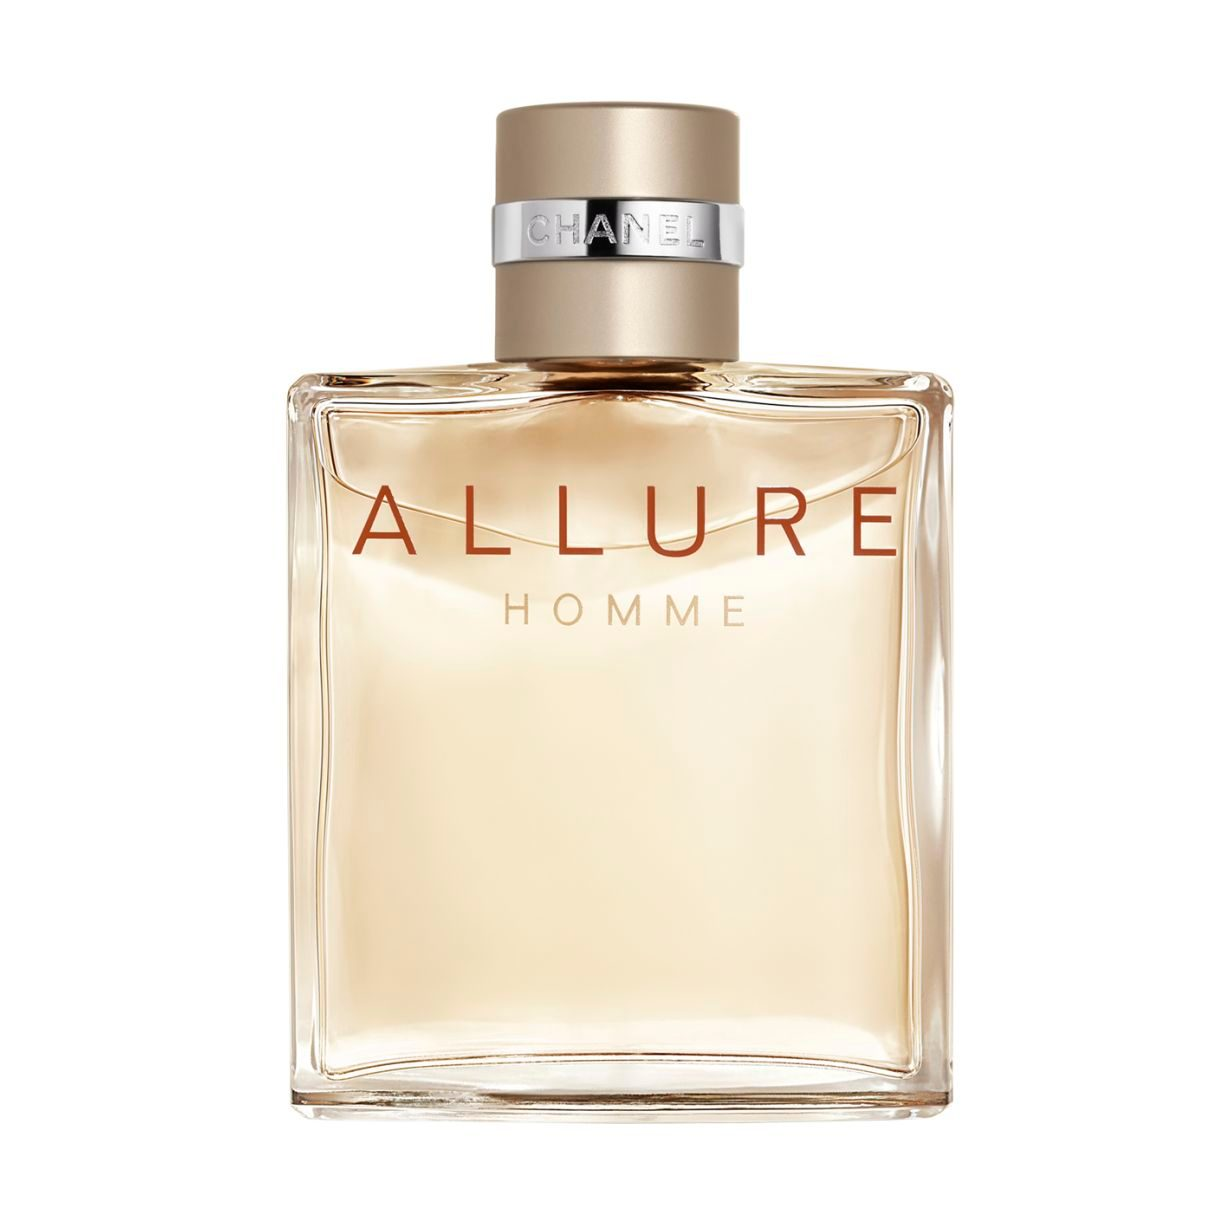 ALLURE HOMME EAU DE TOILETTE SPRAY 50ML